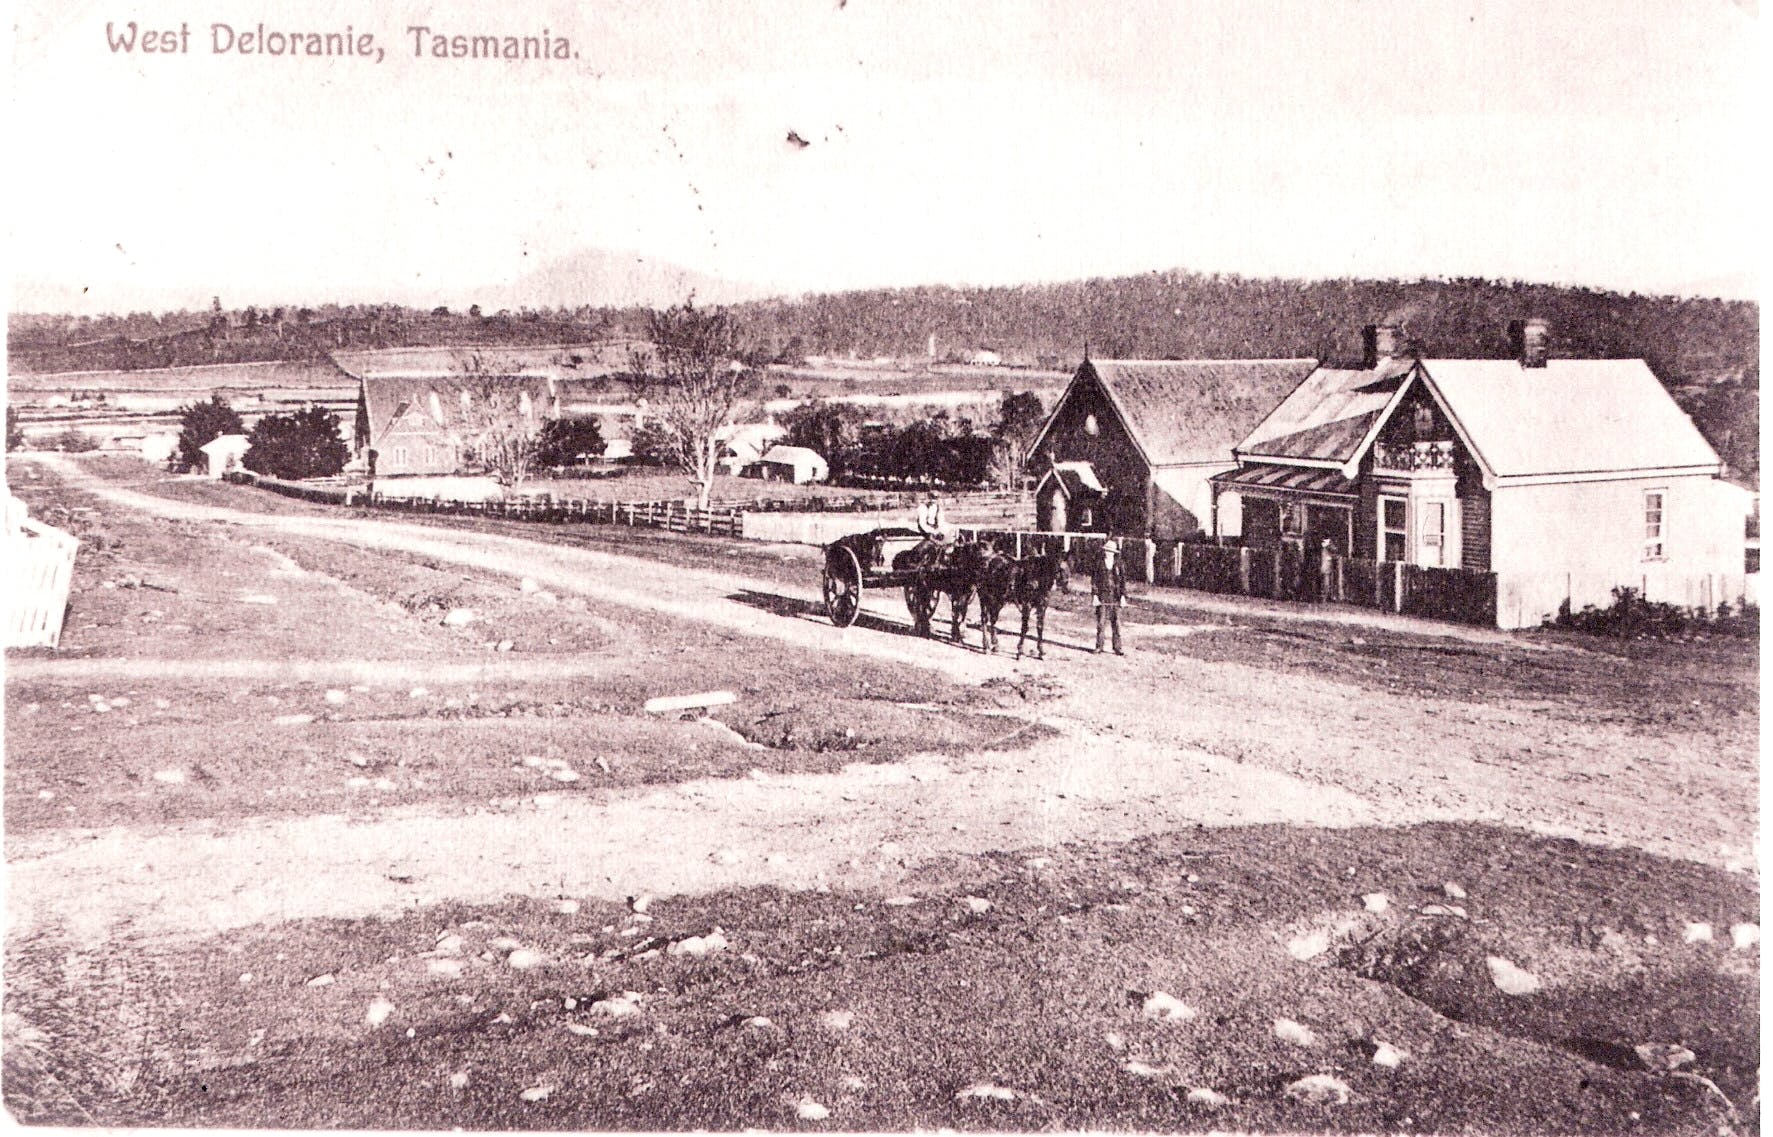 Historic photo of Deloraine Tasmania. Part of the history of Blakes Manor.